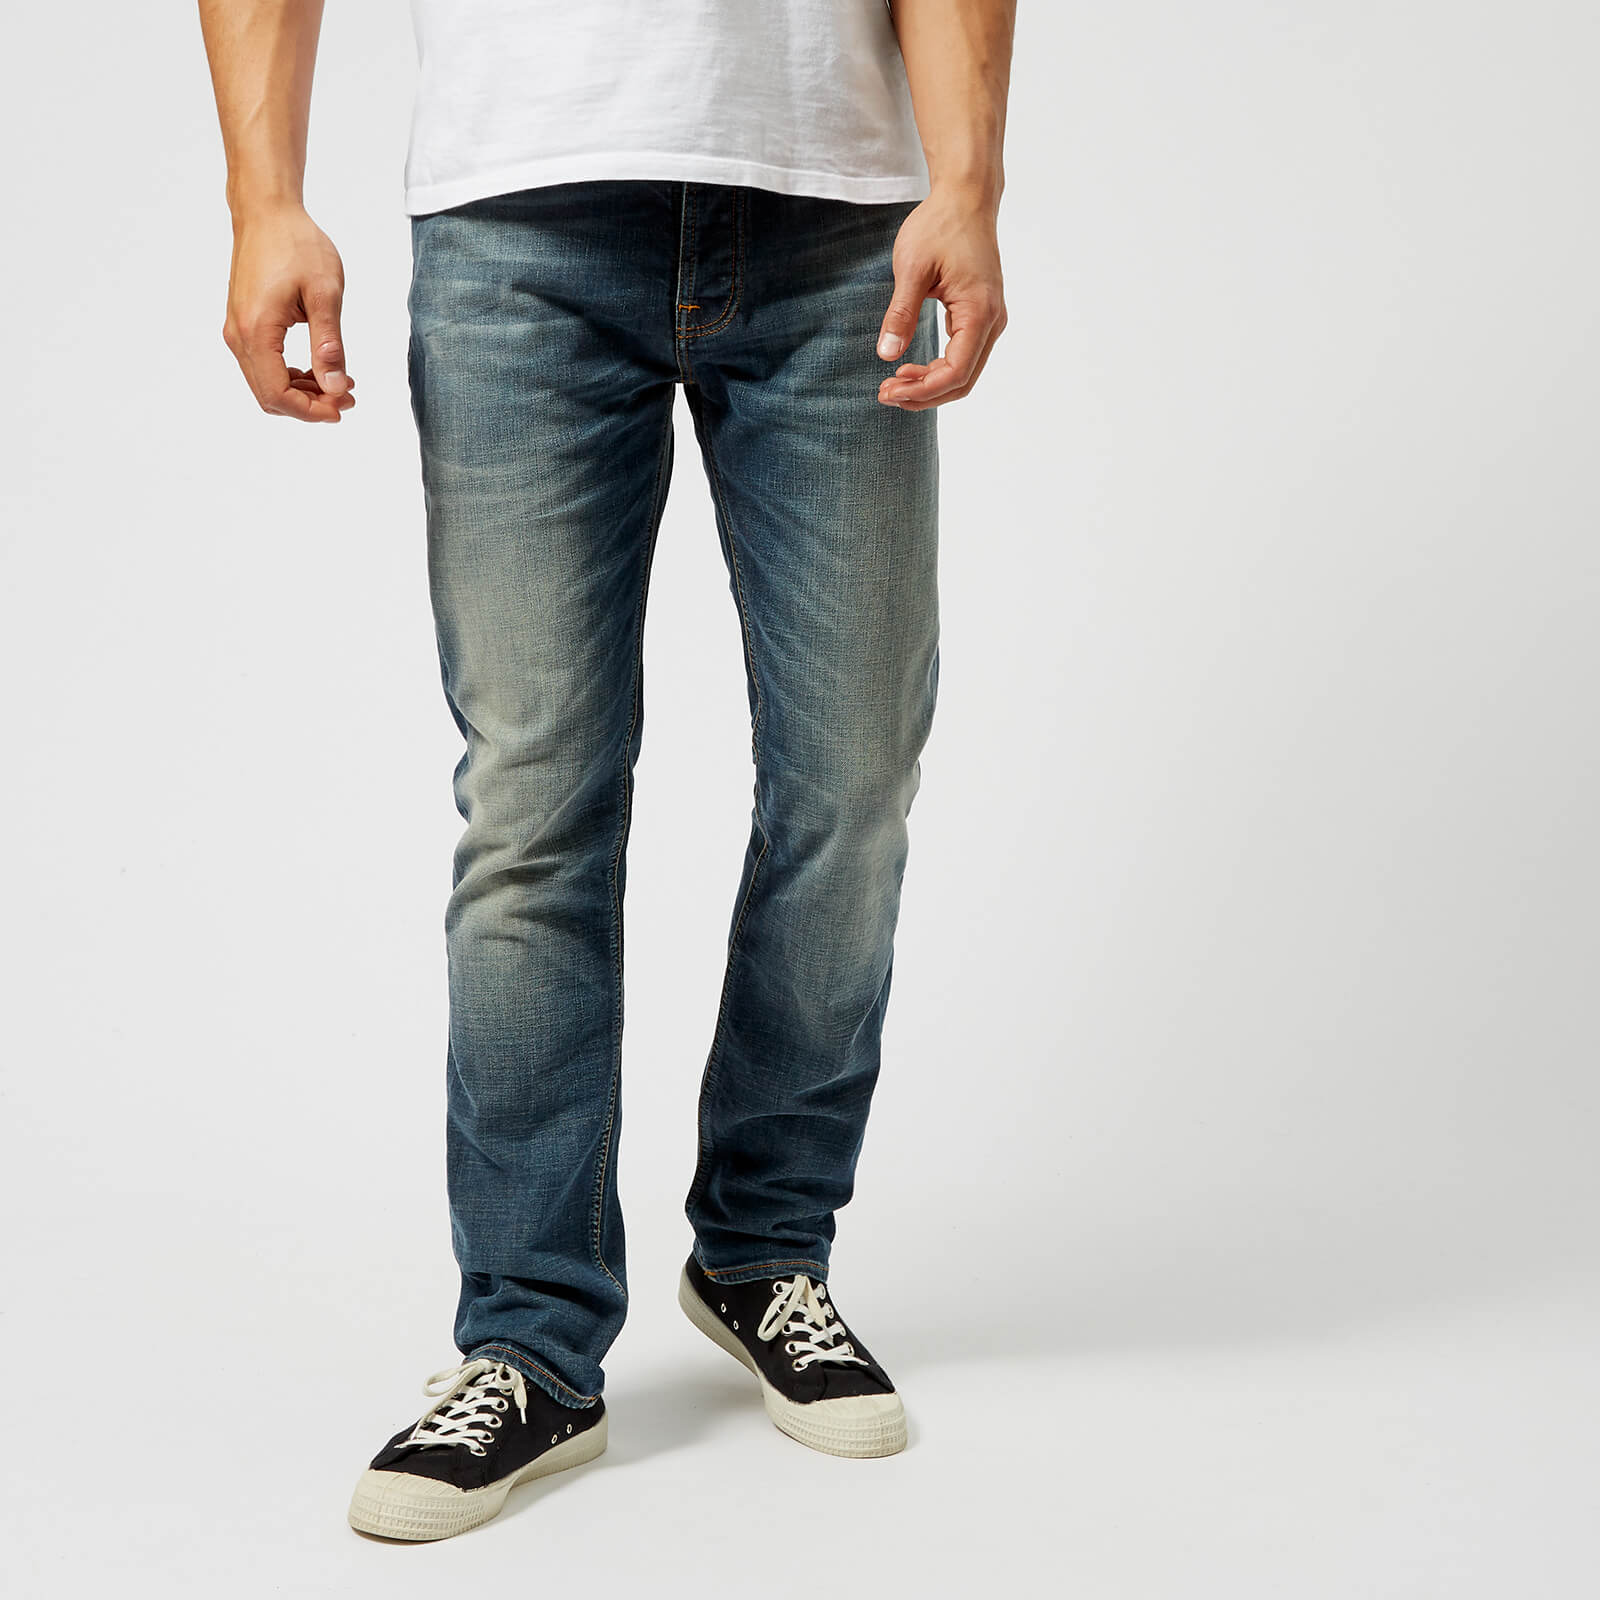 6bcc324235bfc Nudie Jeans Men s Dude Dan Jeans - Worn Well Comf. - Free UK Delivery over  £50